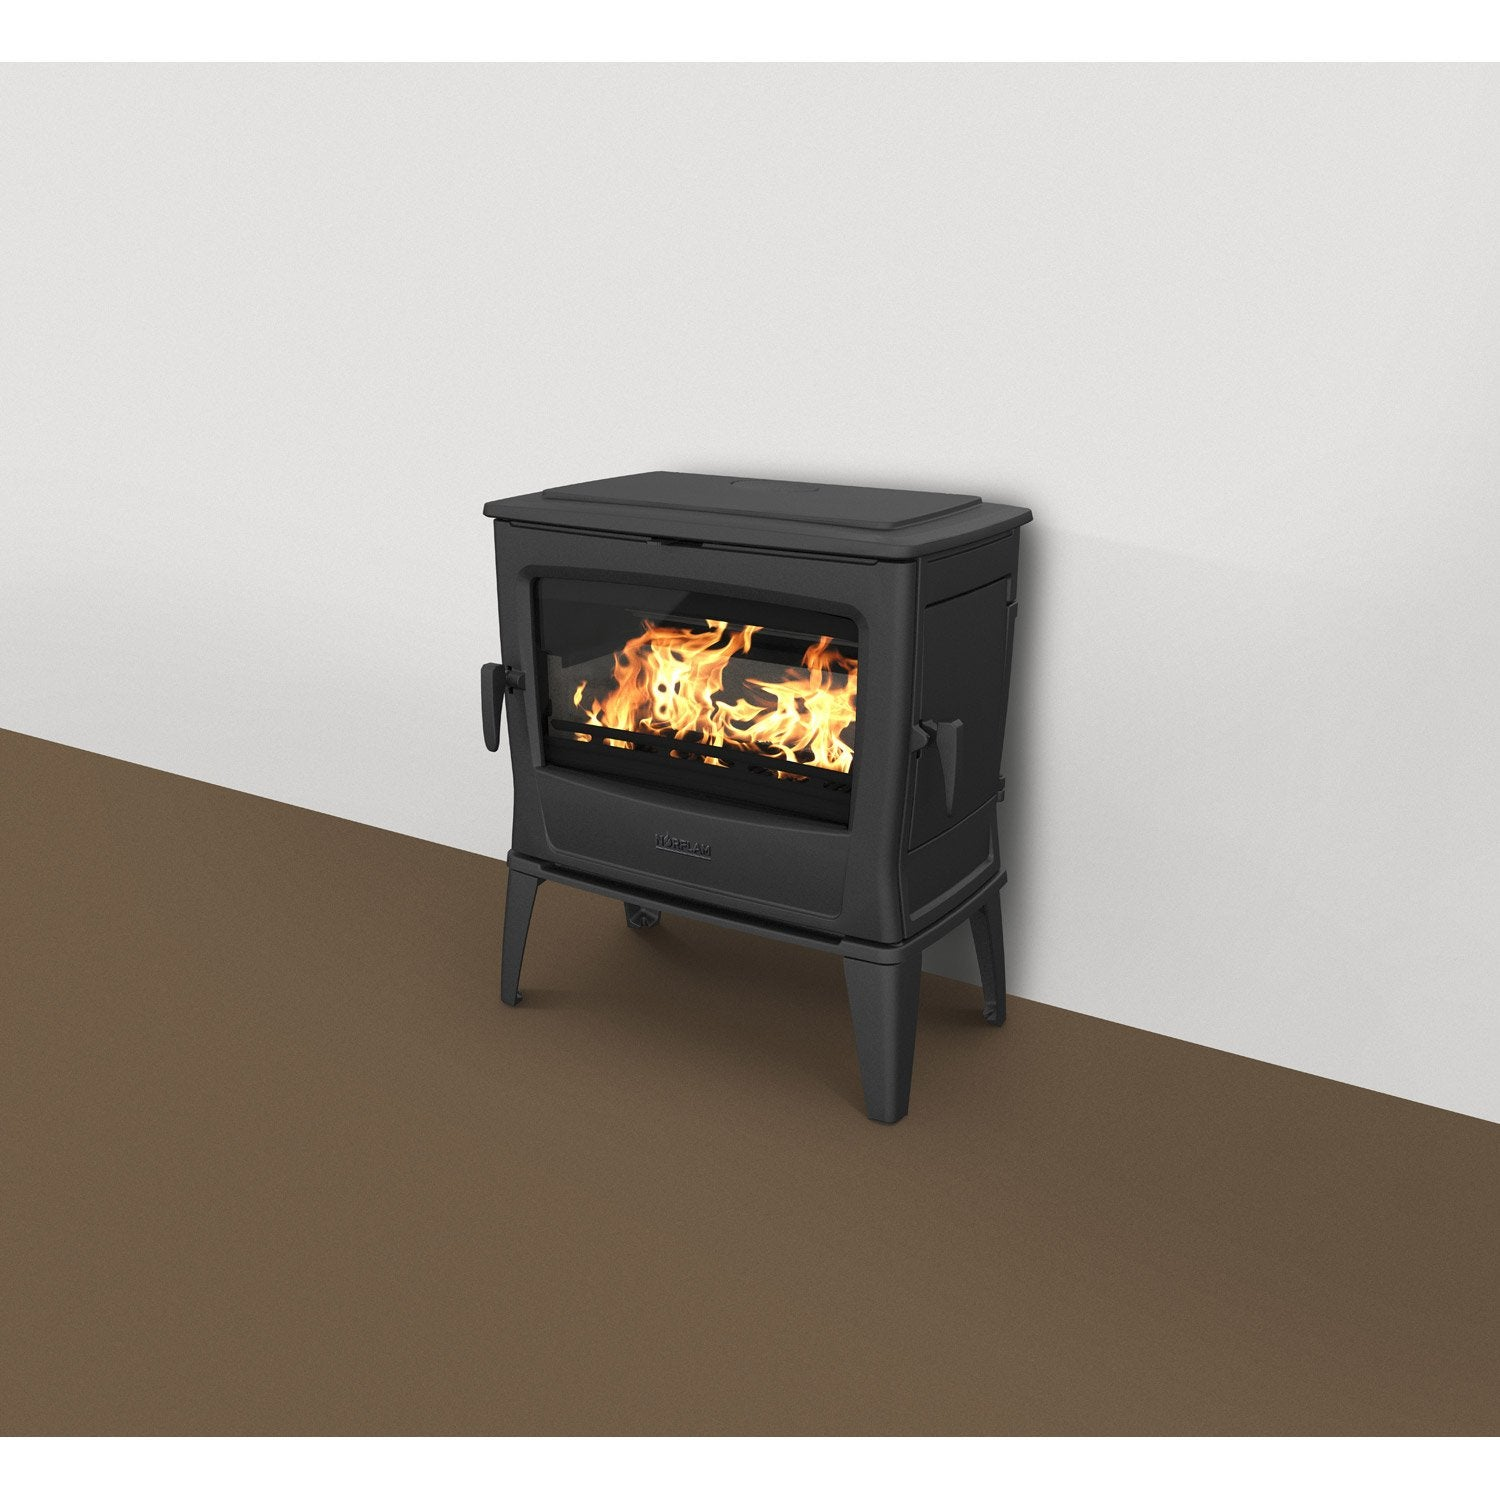 po le bois norflam by dovre forte noir 11 kw leroy merlin. Black Bedroom Furniture Sets. Home Design Ideas